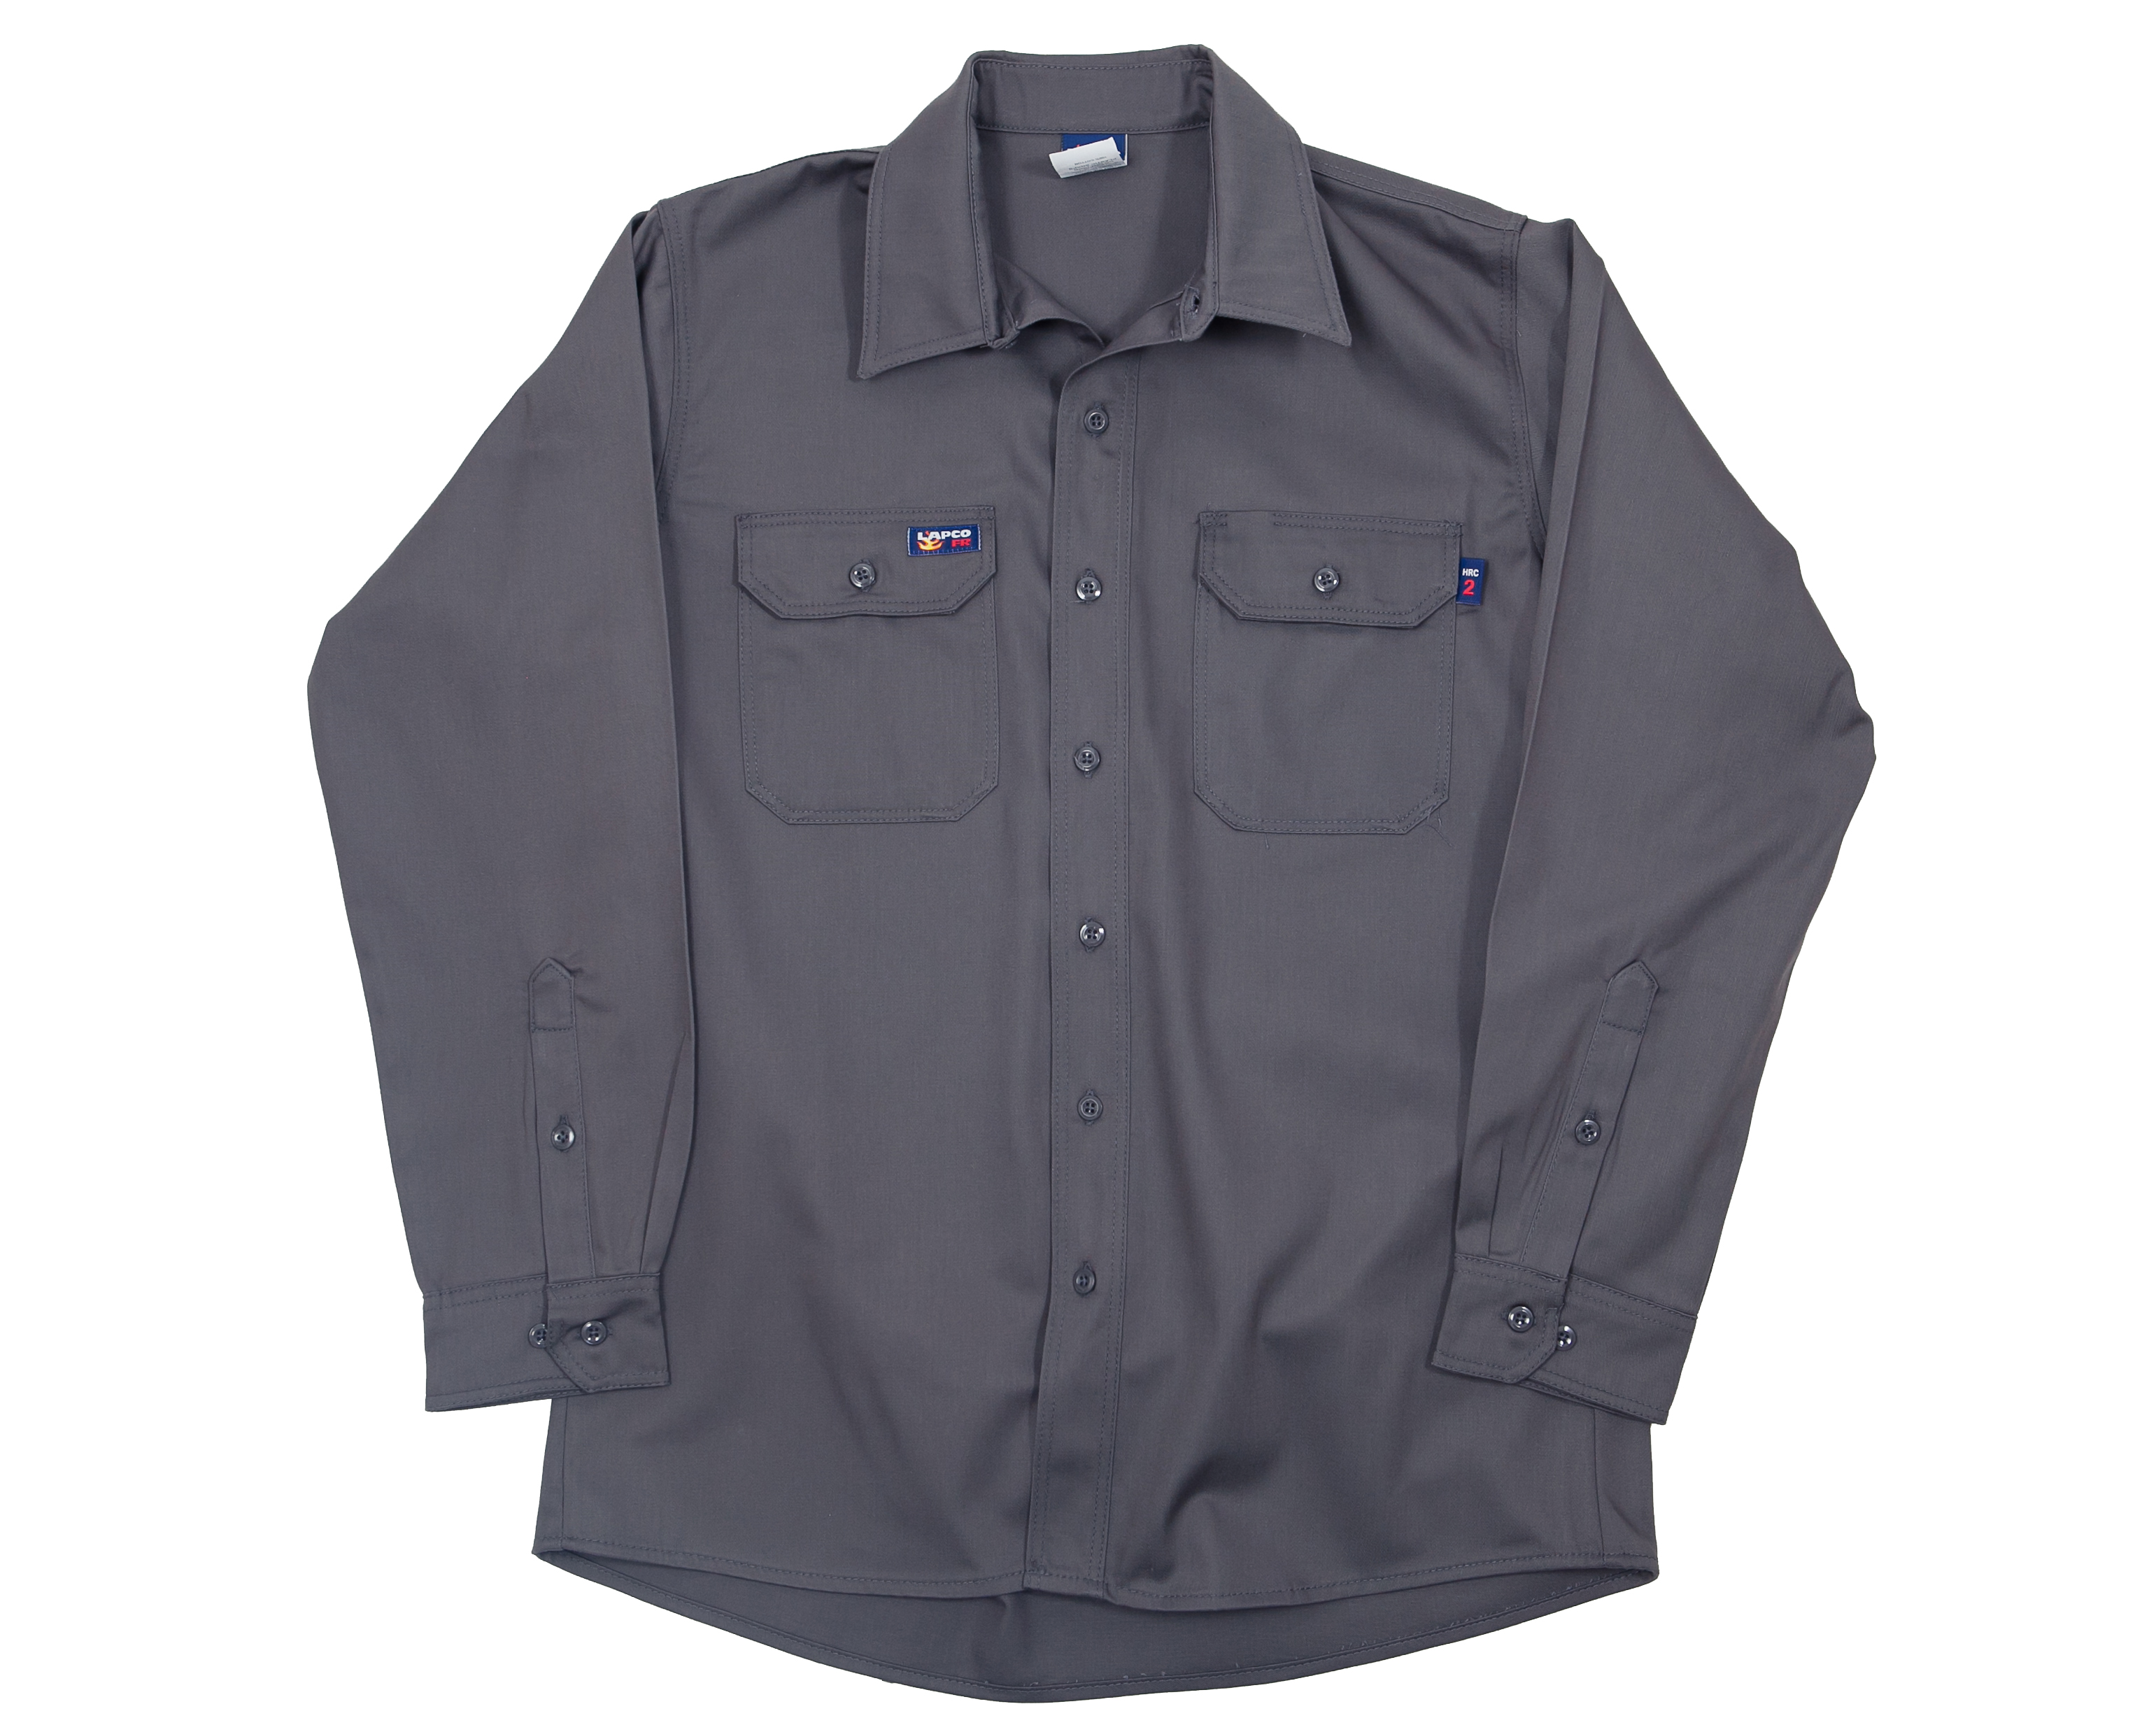 Lapco Fr Uniform Shirt Igr7 Munro S Safety Apparel